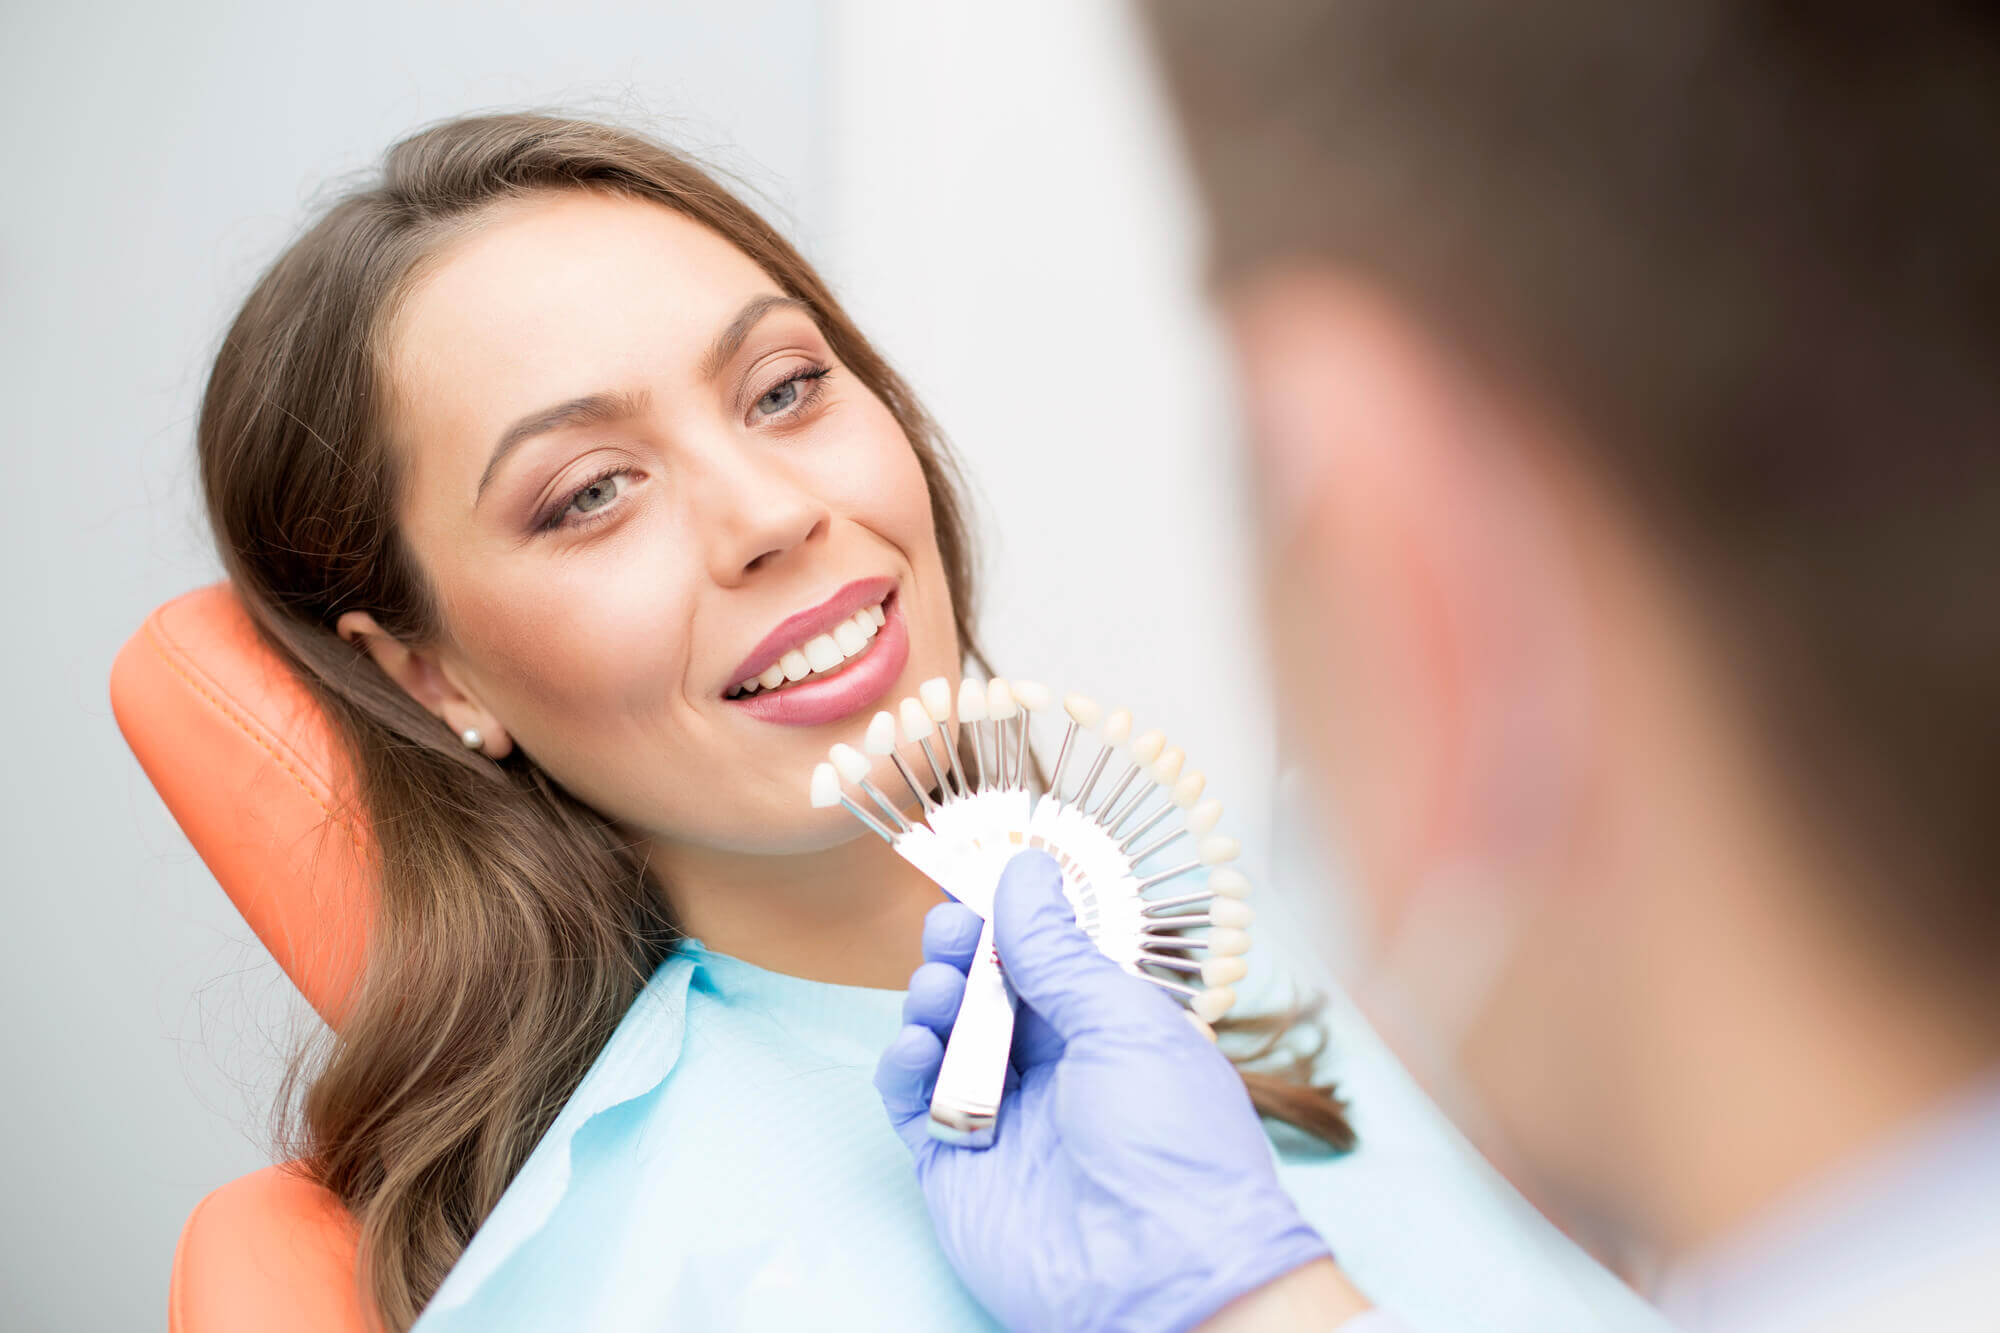 where to get the best dental implants in sunny isles fl?